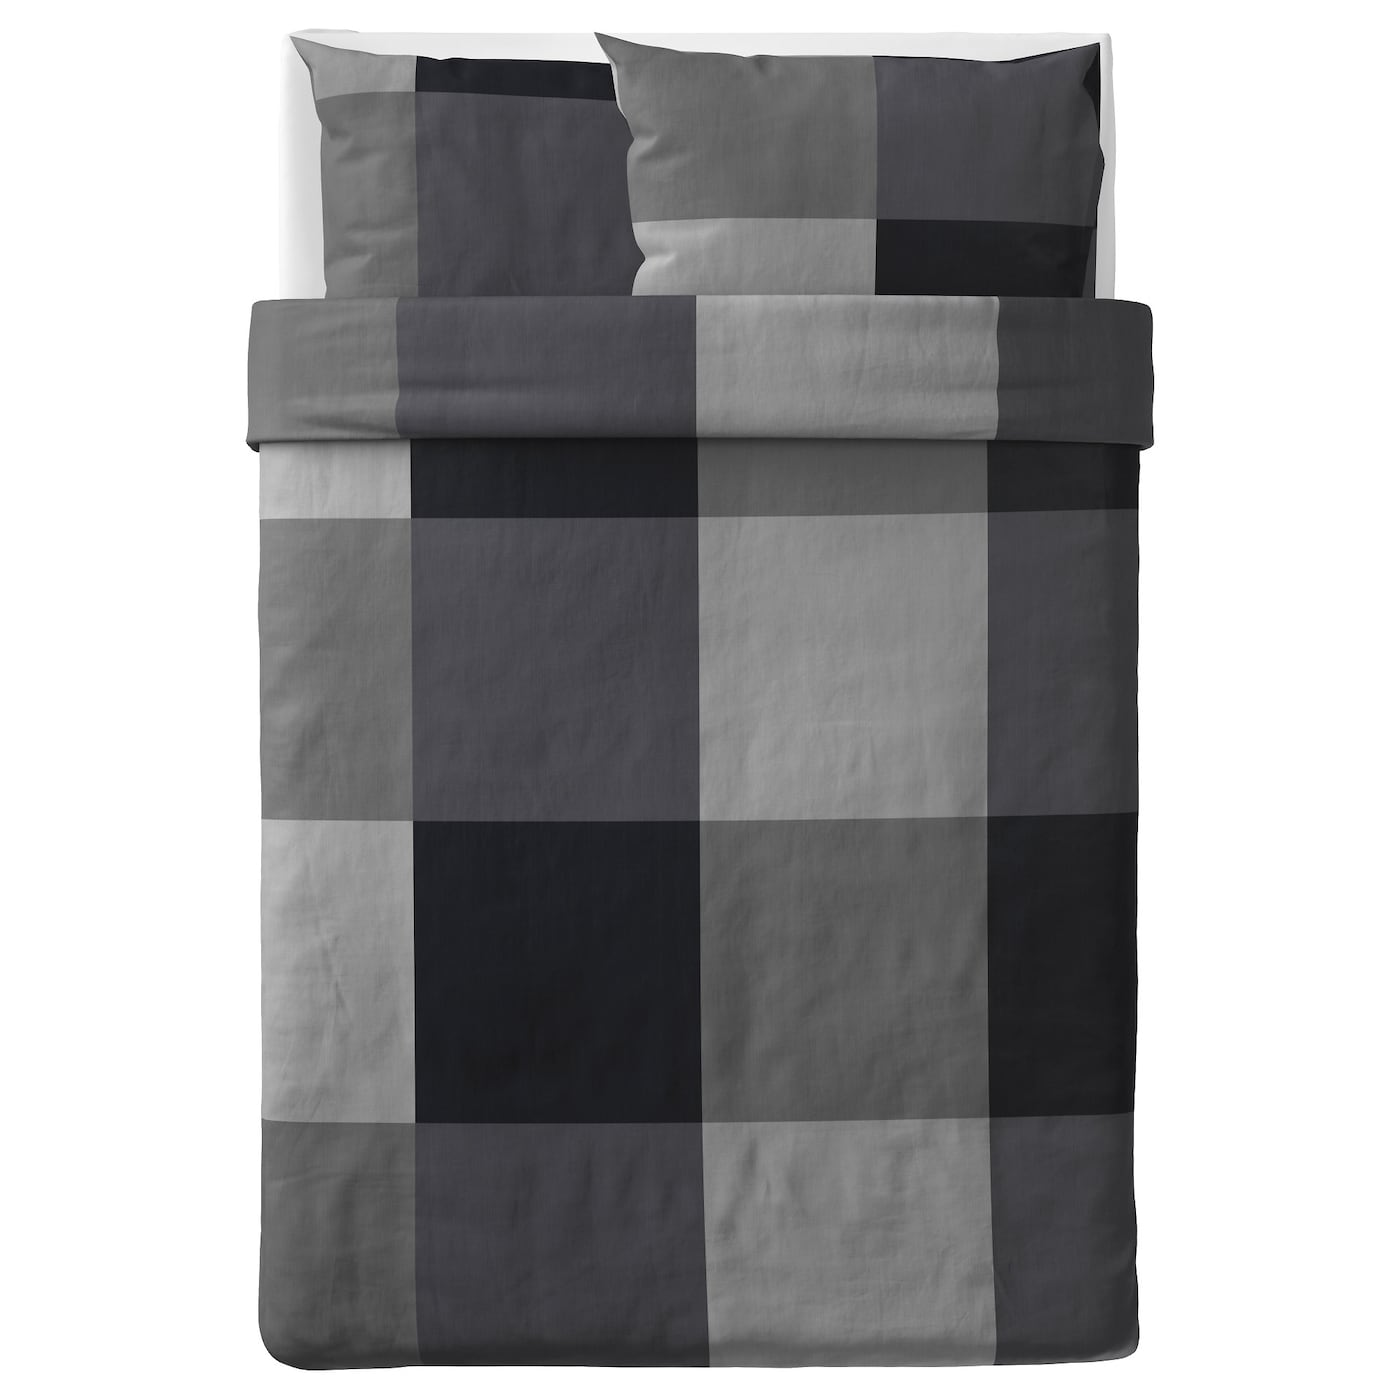 brunkrissla quilt cover and 2 pillowcases black 200x200 50x80 cm ikea. Black Bedroom Furniture Sets. Home Design Ideas